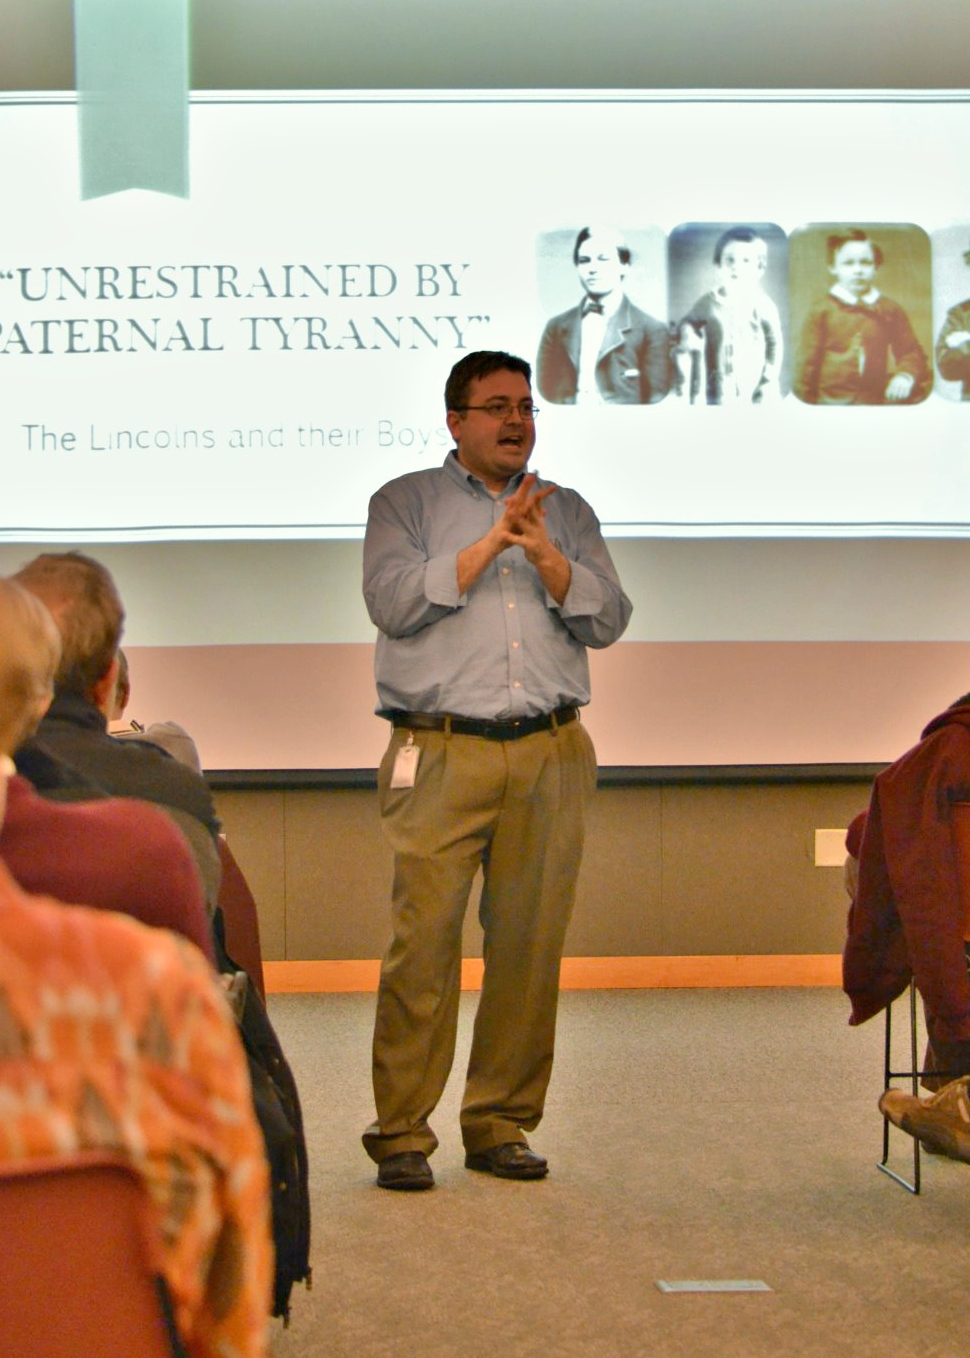 Illinois state historian appointed